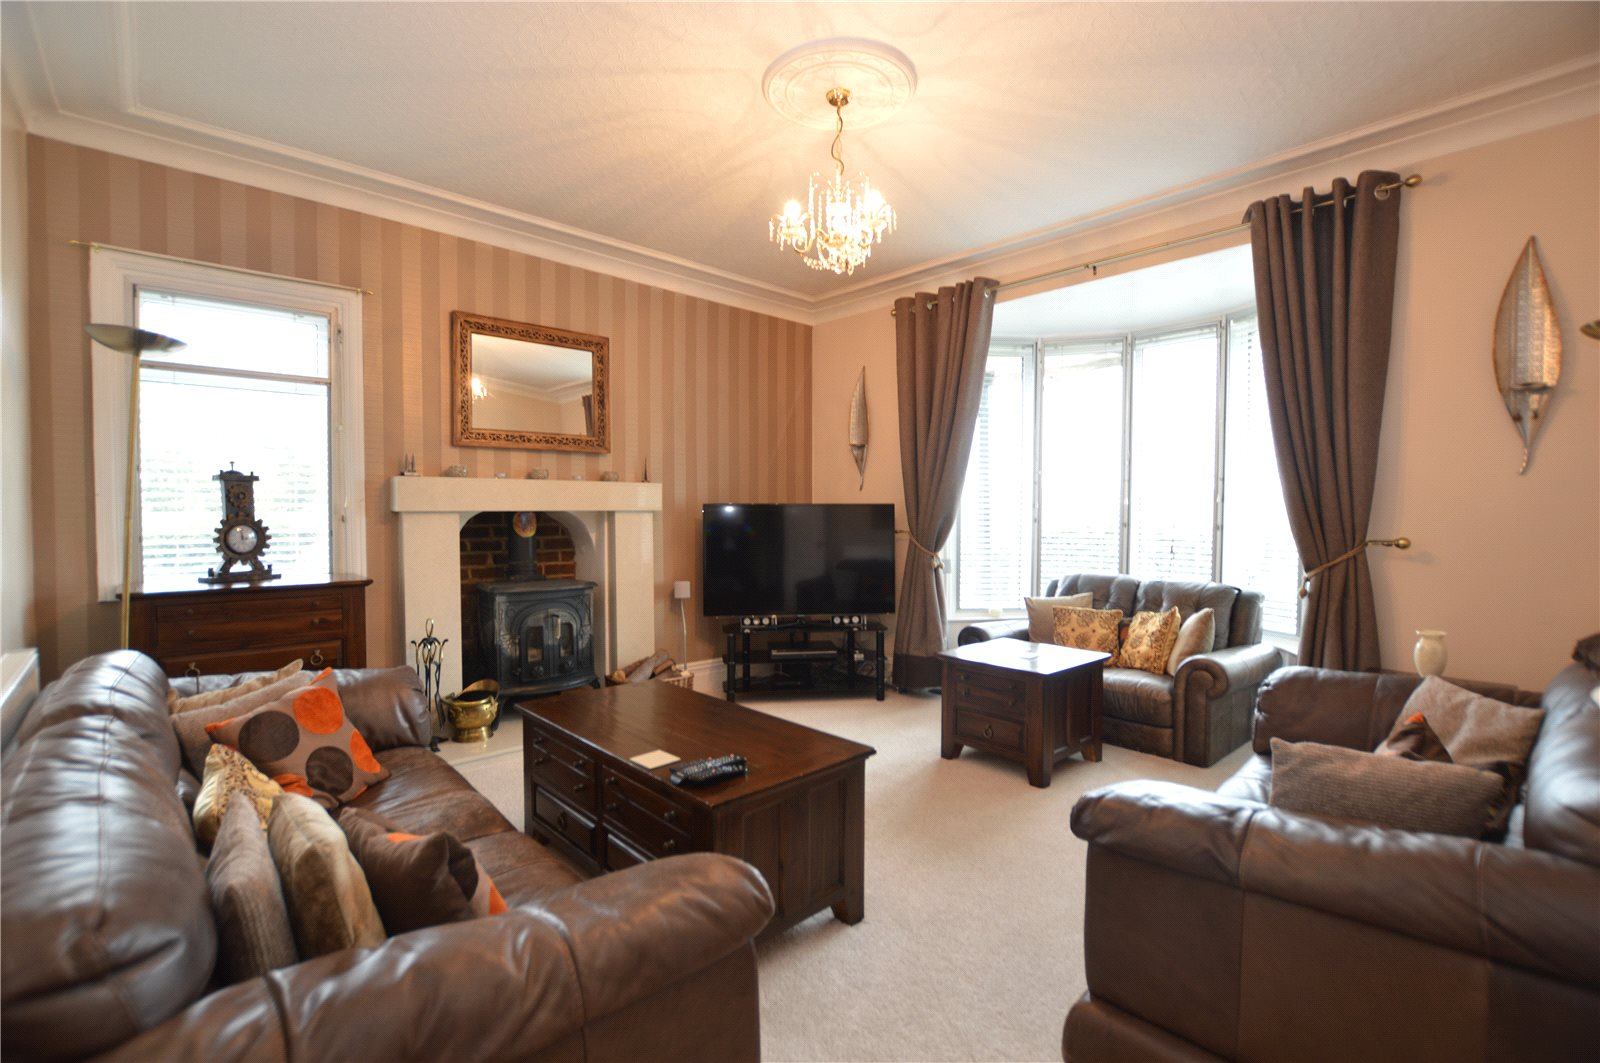 Property for sale in Morley, interior spacious family lounge, three leather sofas